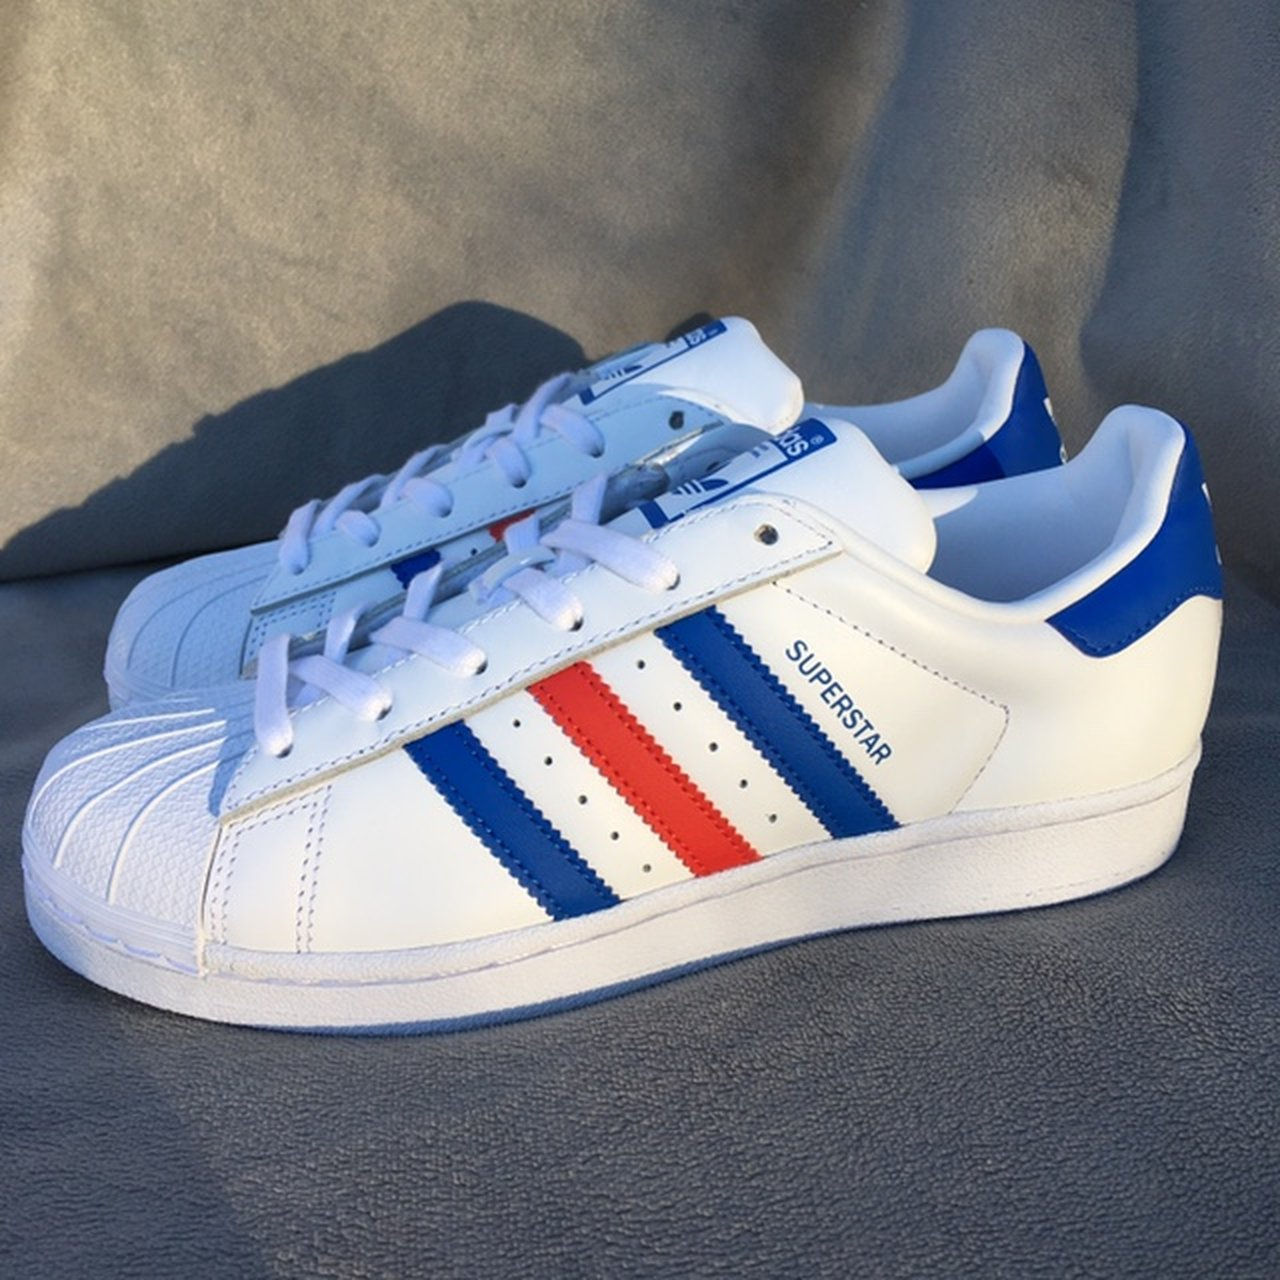 cheap for discount b9c52 c65cf hdizzyh. 4 months ago. Newtown, United States. New Adidas Superstar Shell  toe sneakers. White with red and blue ...